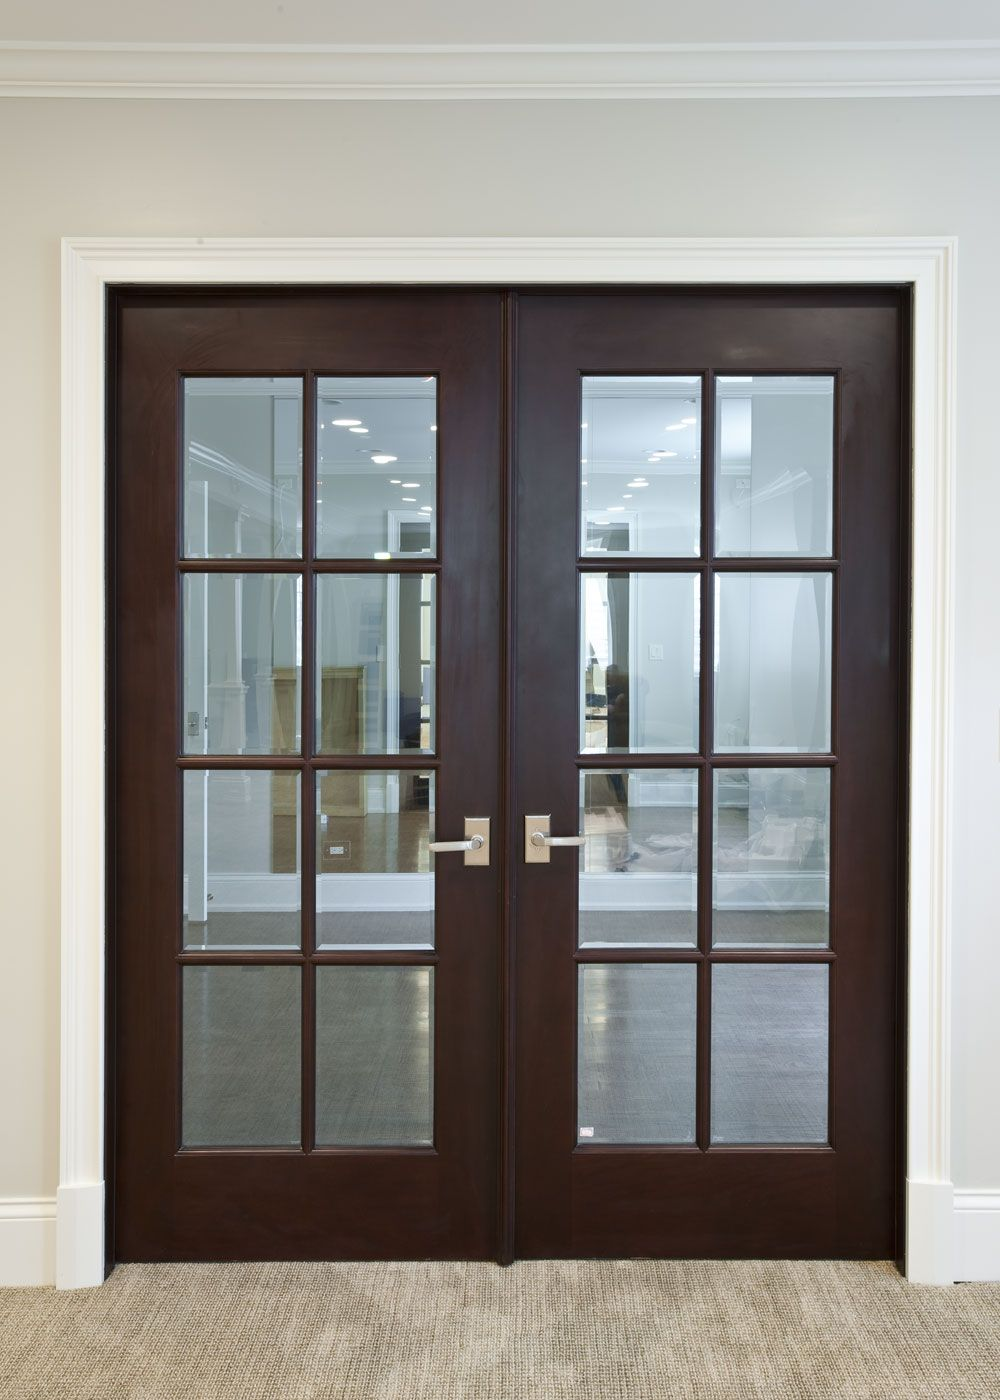 Interior doors double - Custom Mahogany Interior Doors Our Custom Mahogany Door From Doors For Builders May Be The Right Choice Leading Supplier Of Custom Mahogany Solid Wood